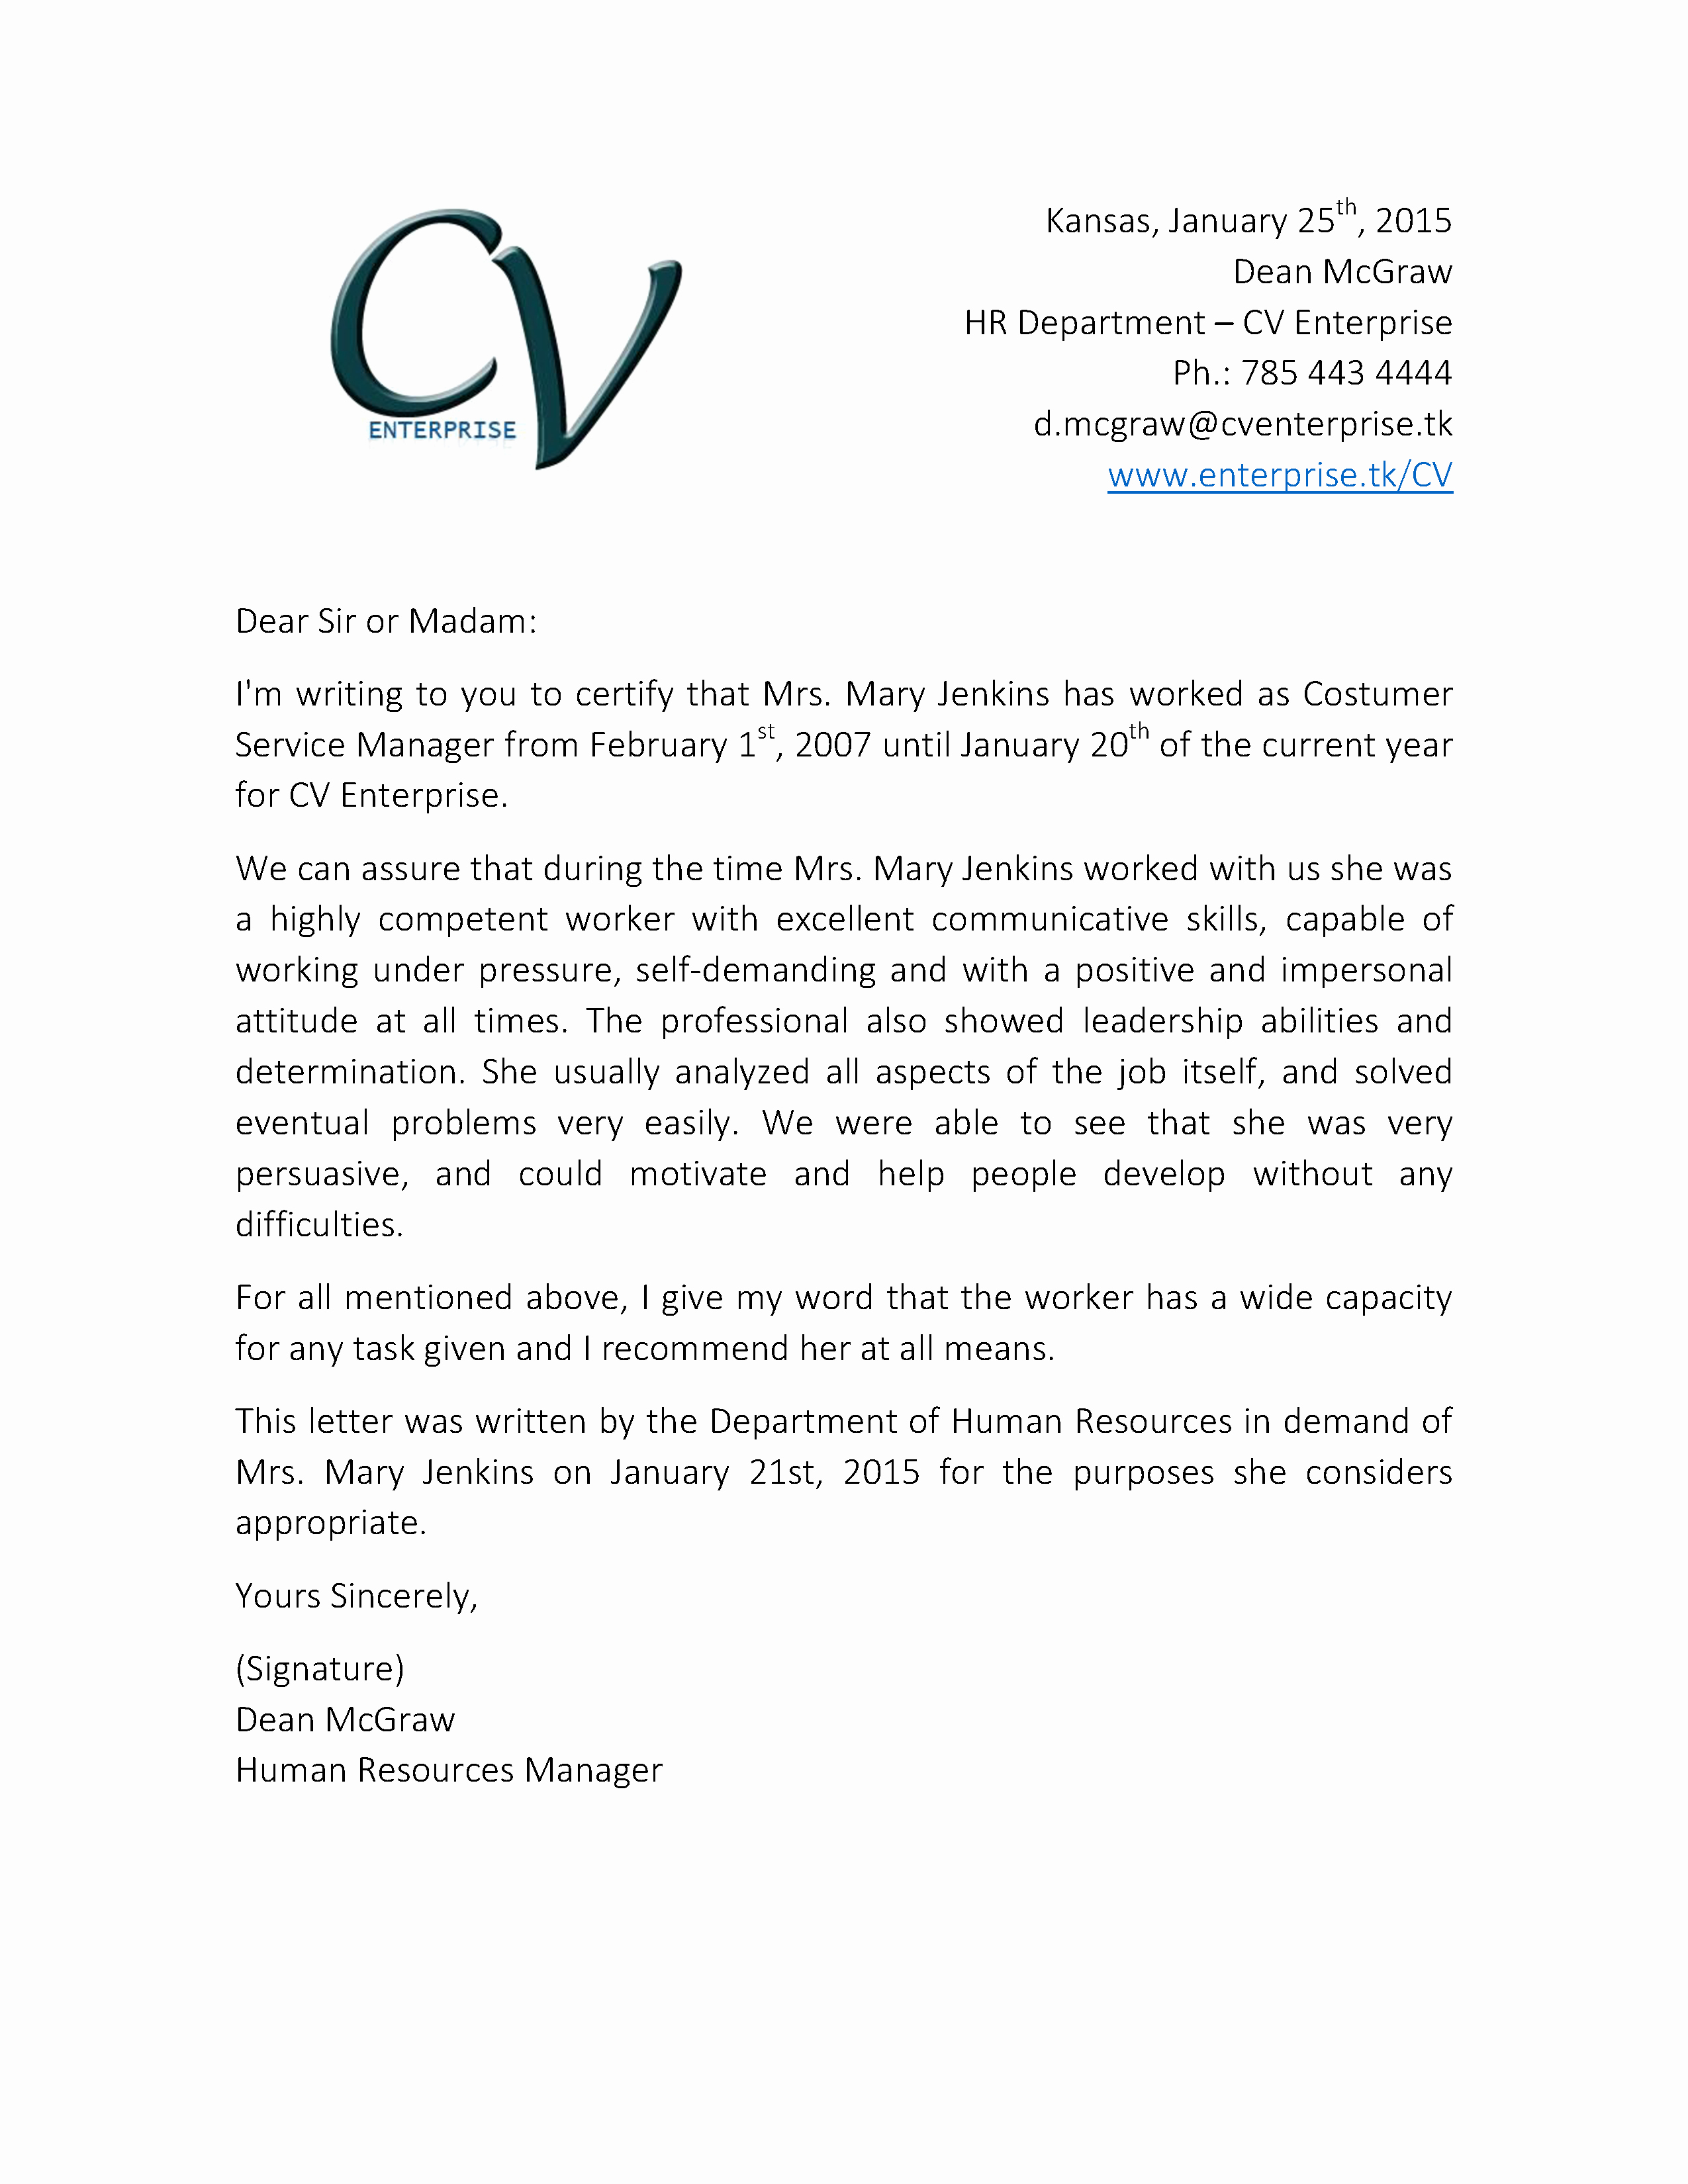 Recommendation Letter for Services Provided Lovely Re Mendation Letter for Customer Service Job 2 Grow